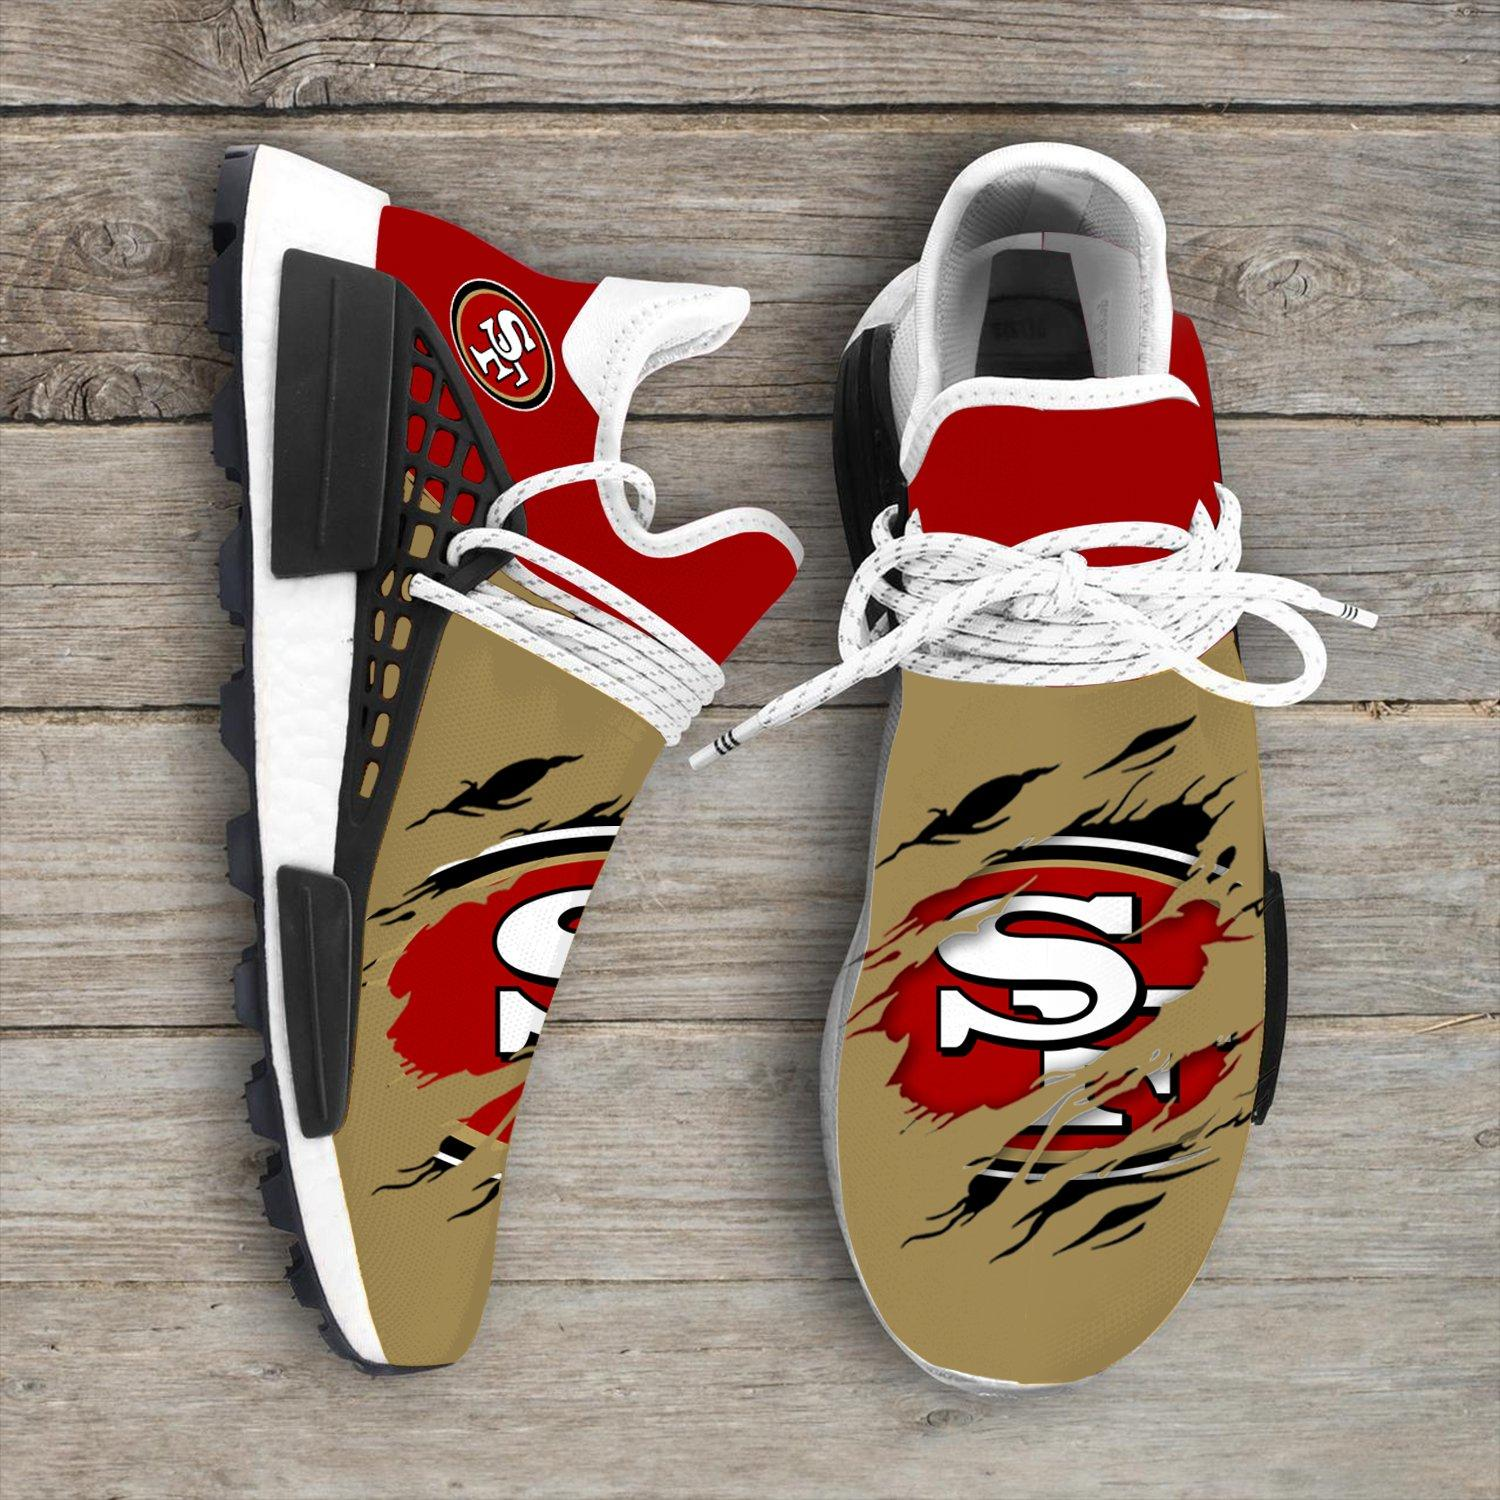 San Francisco 49ers Nfl Sport Teams NMD Human Shoes